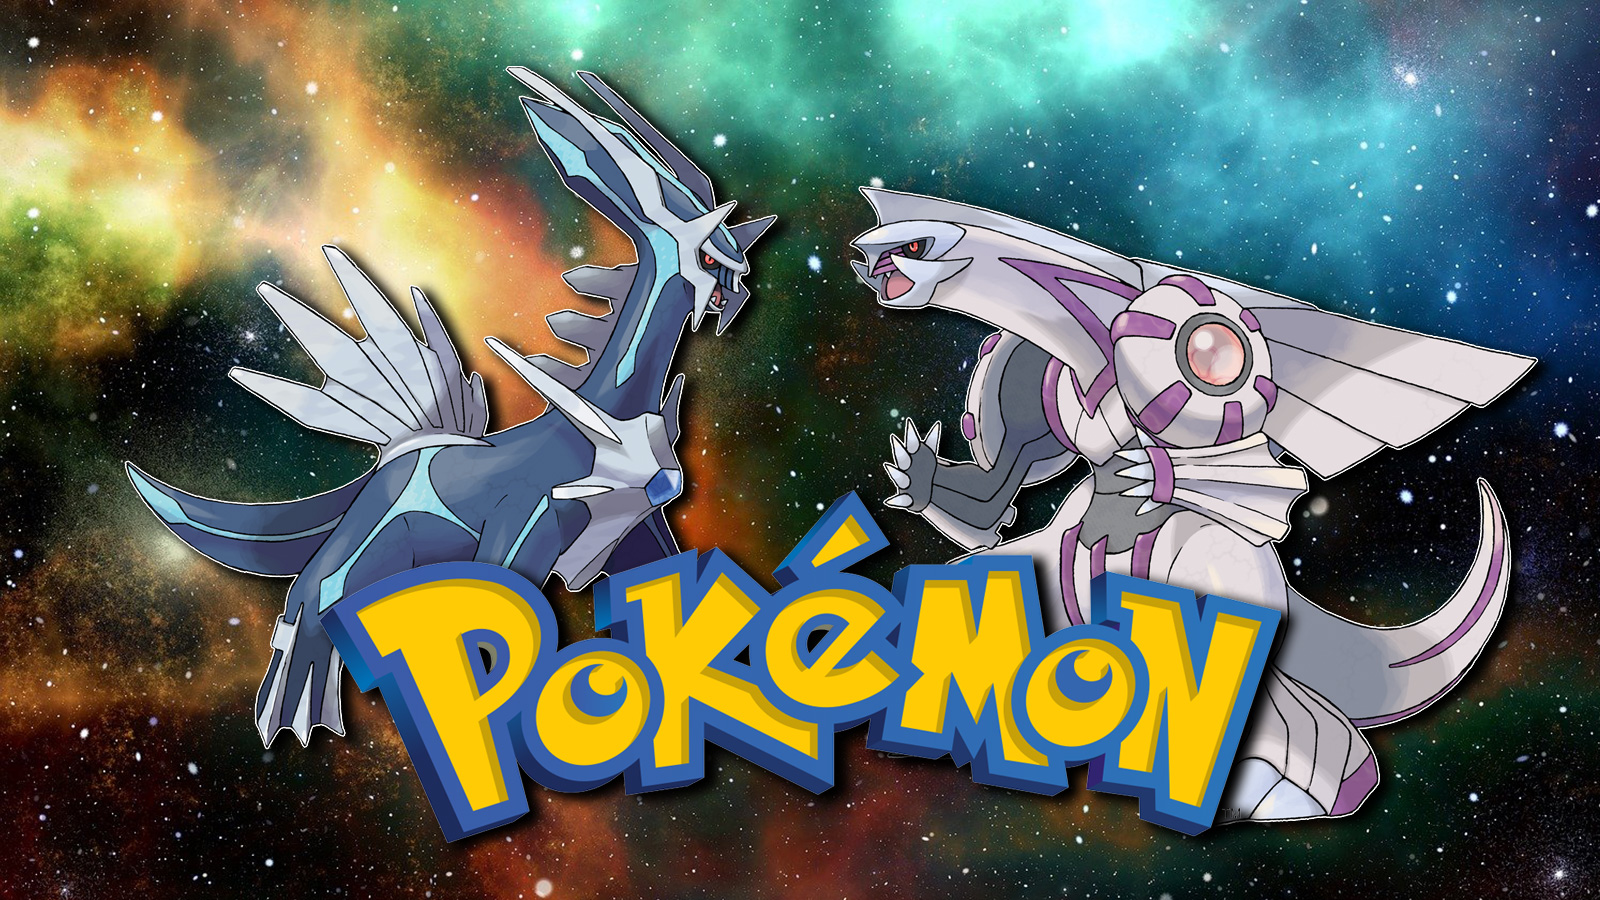 Screenshot of Diamond & Pearl Pokemon Dialga and Palkia over space galaxy background.